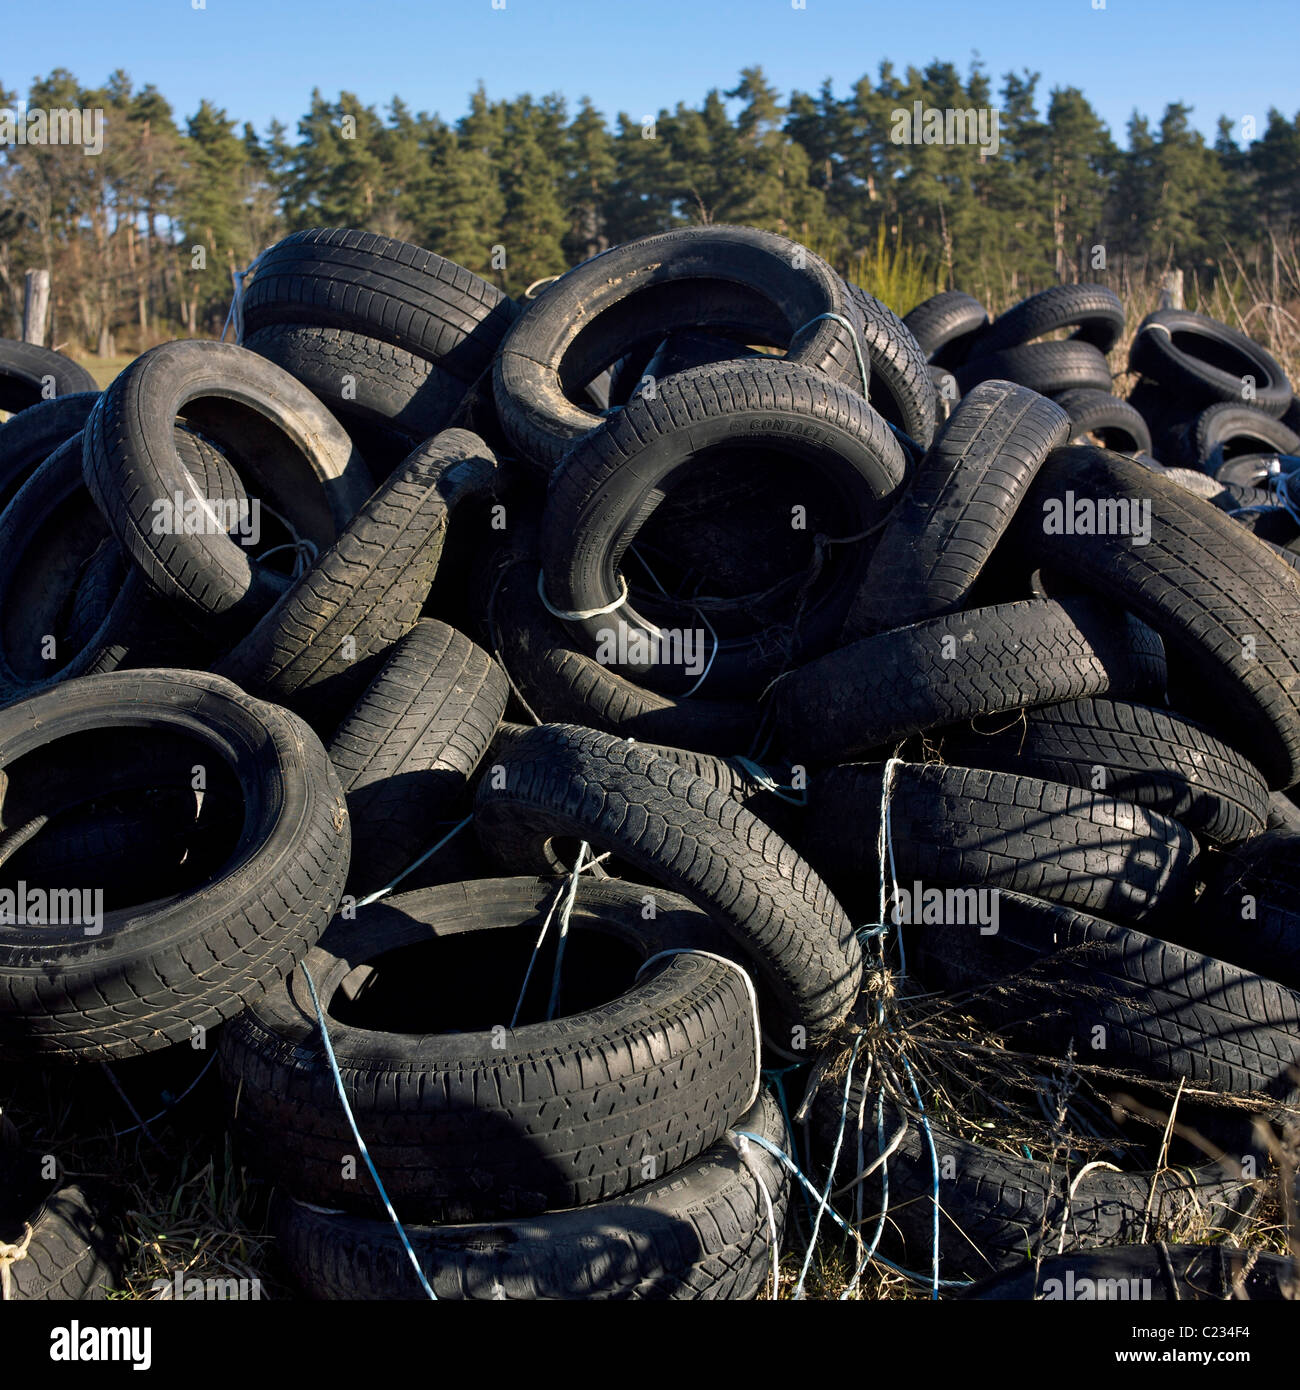 Old rubber tyres in the countryside. - Stock Image